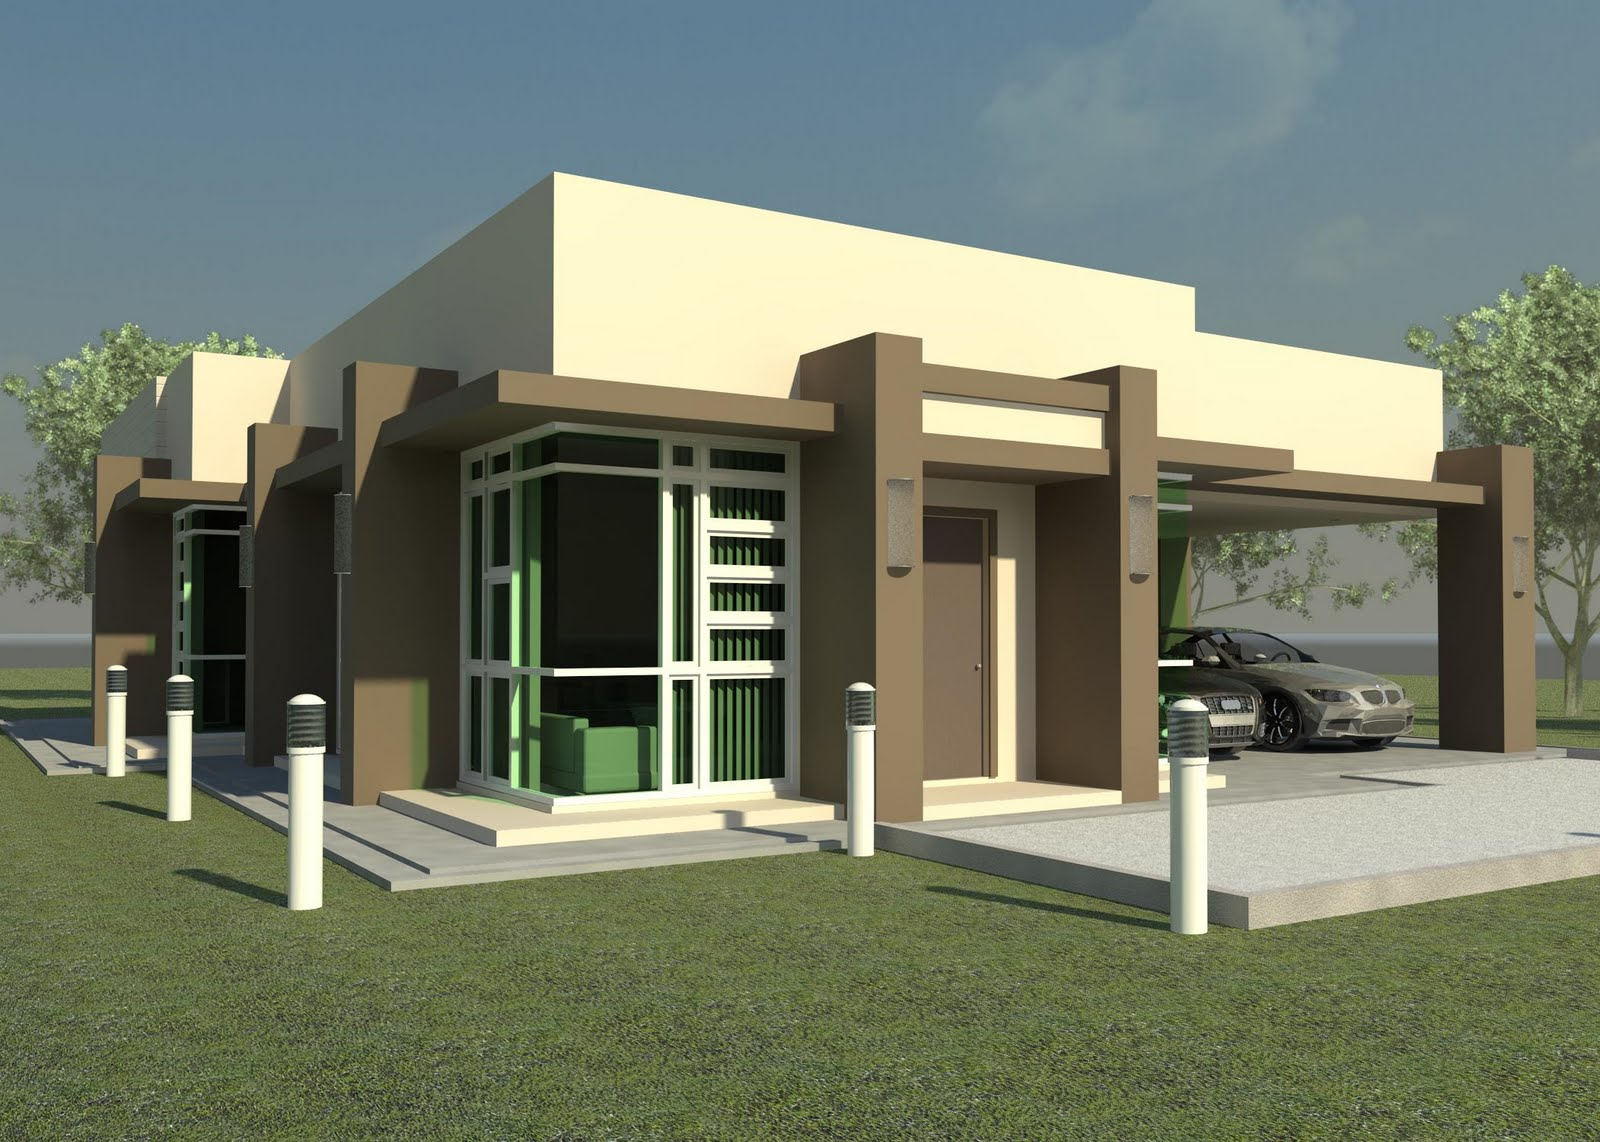 House Design Exterior Modern Small Homes Designs Exterior 2016 Modern Home Designs